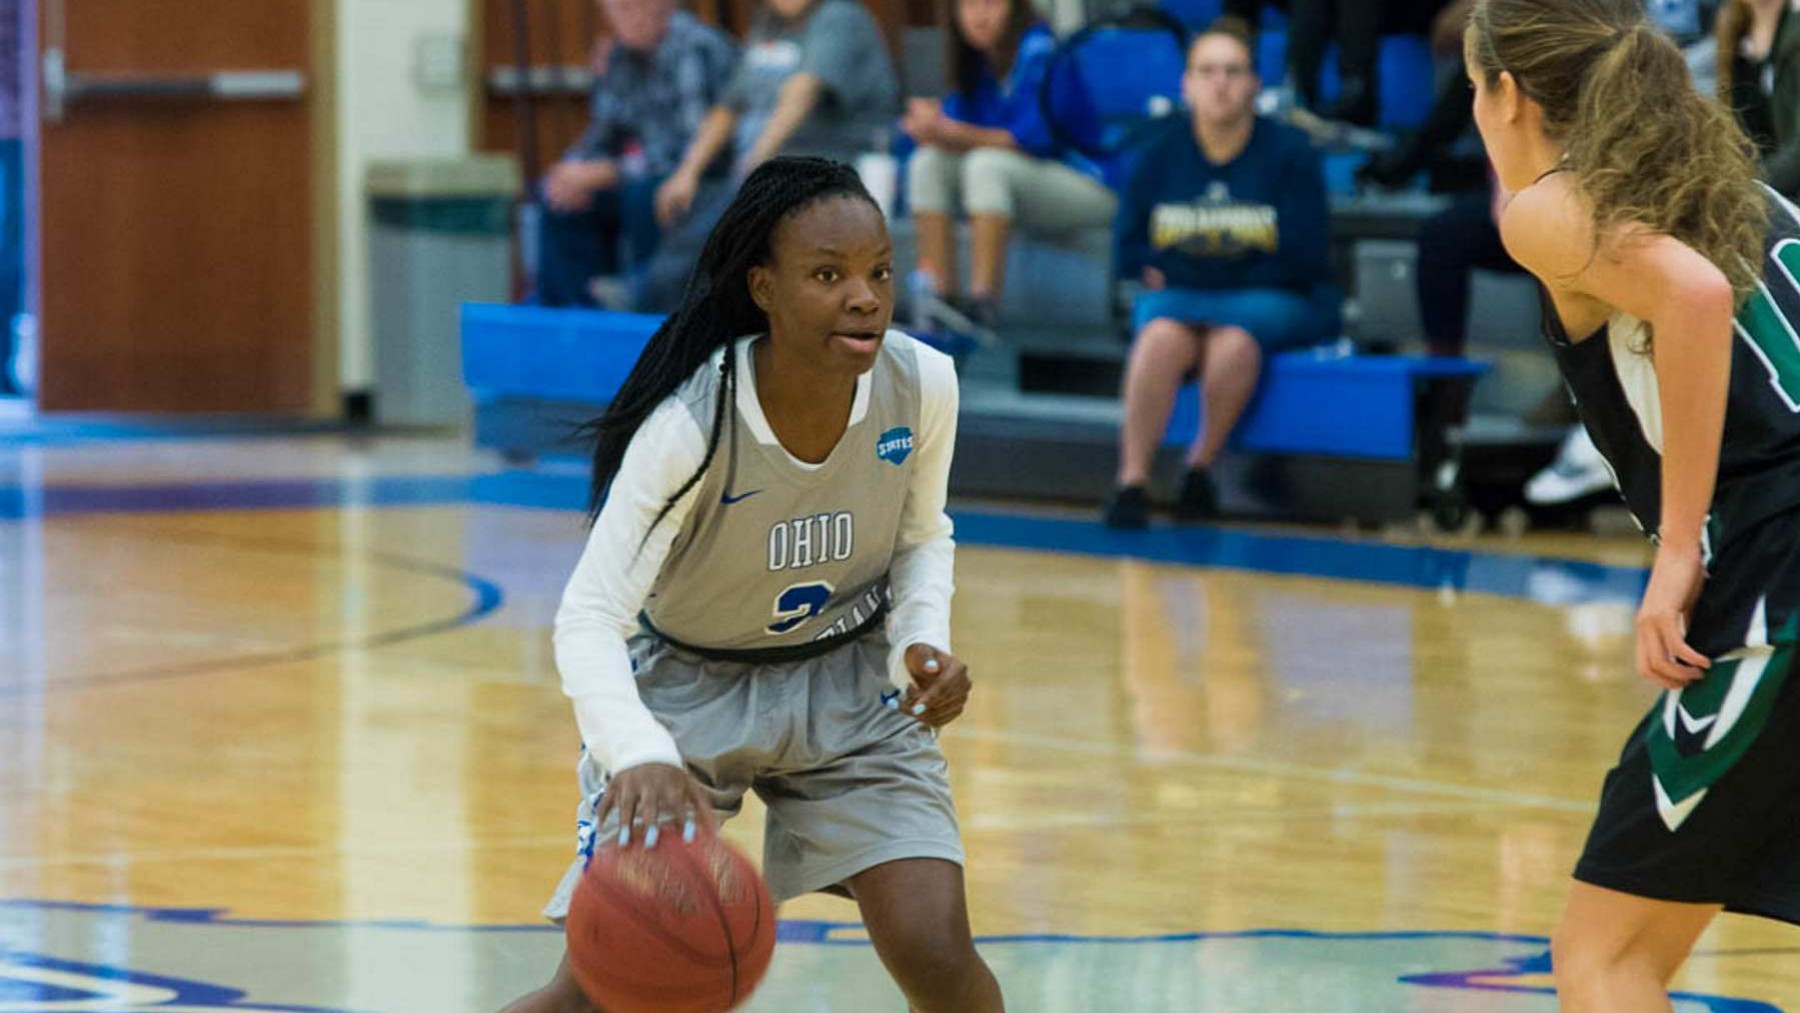 Lady Trailblazers claim victory over CCU image